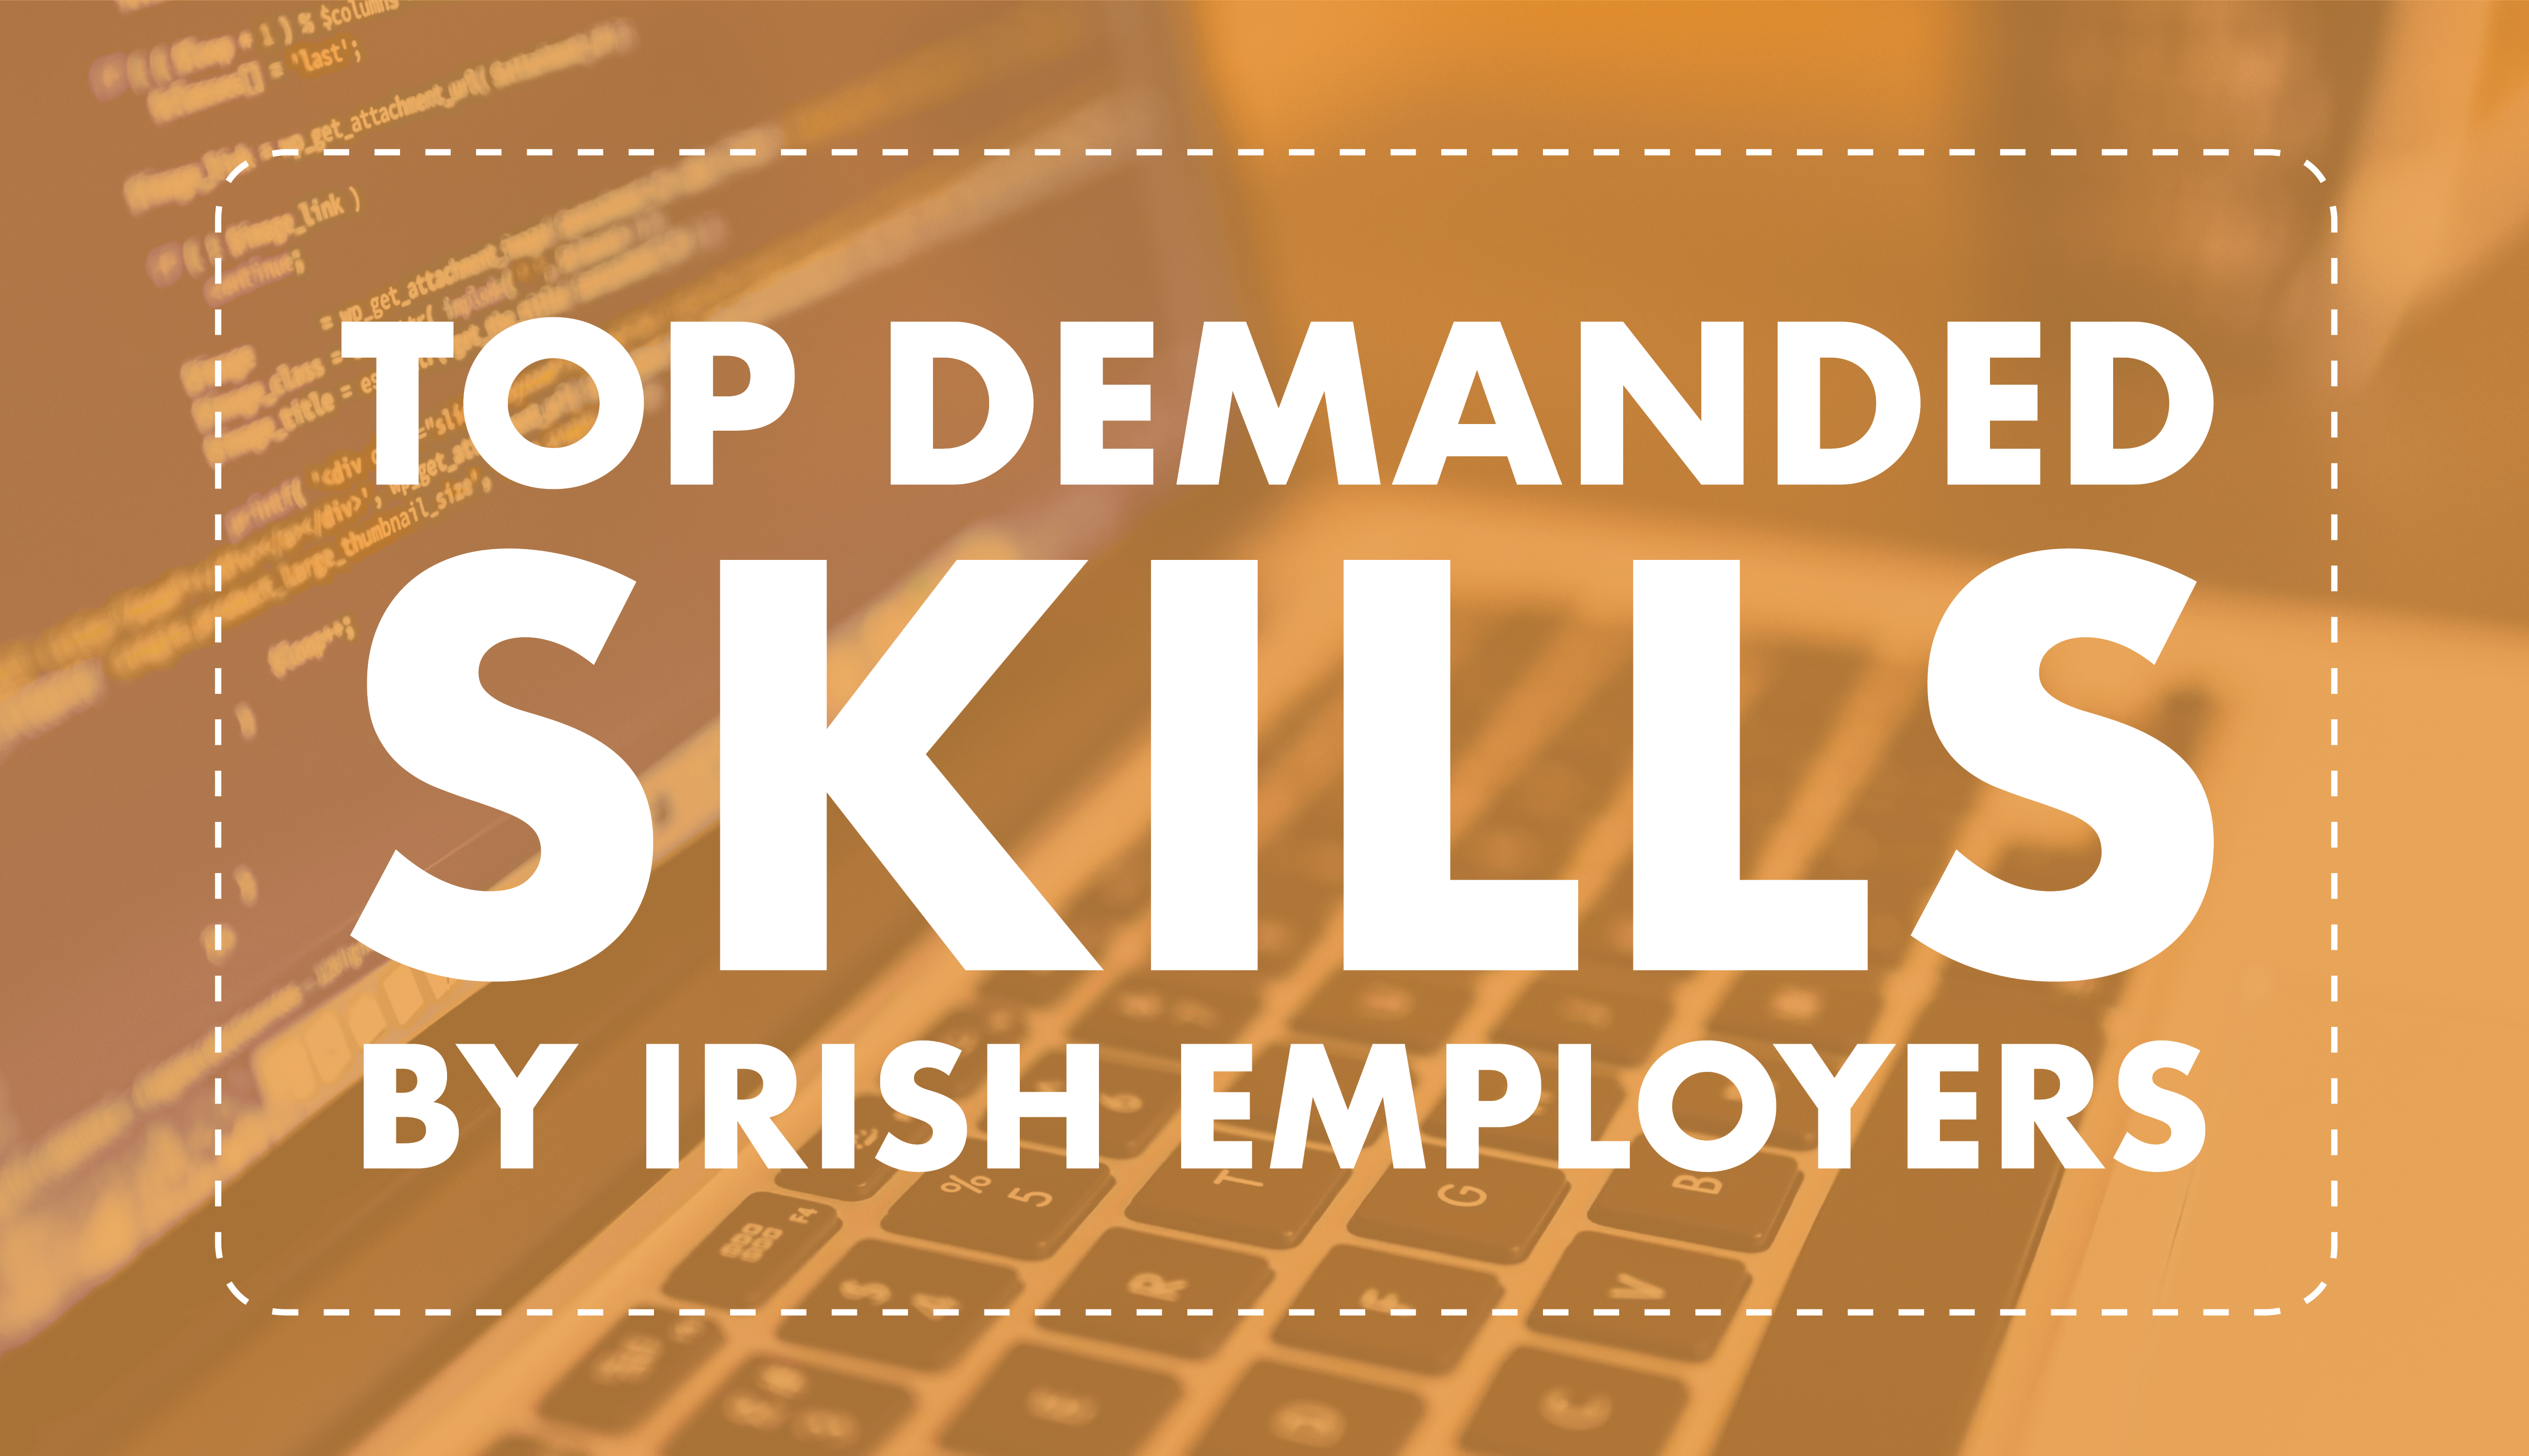 Top demanded skills by Irish employers